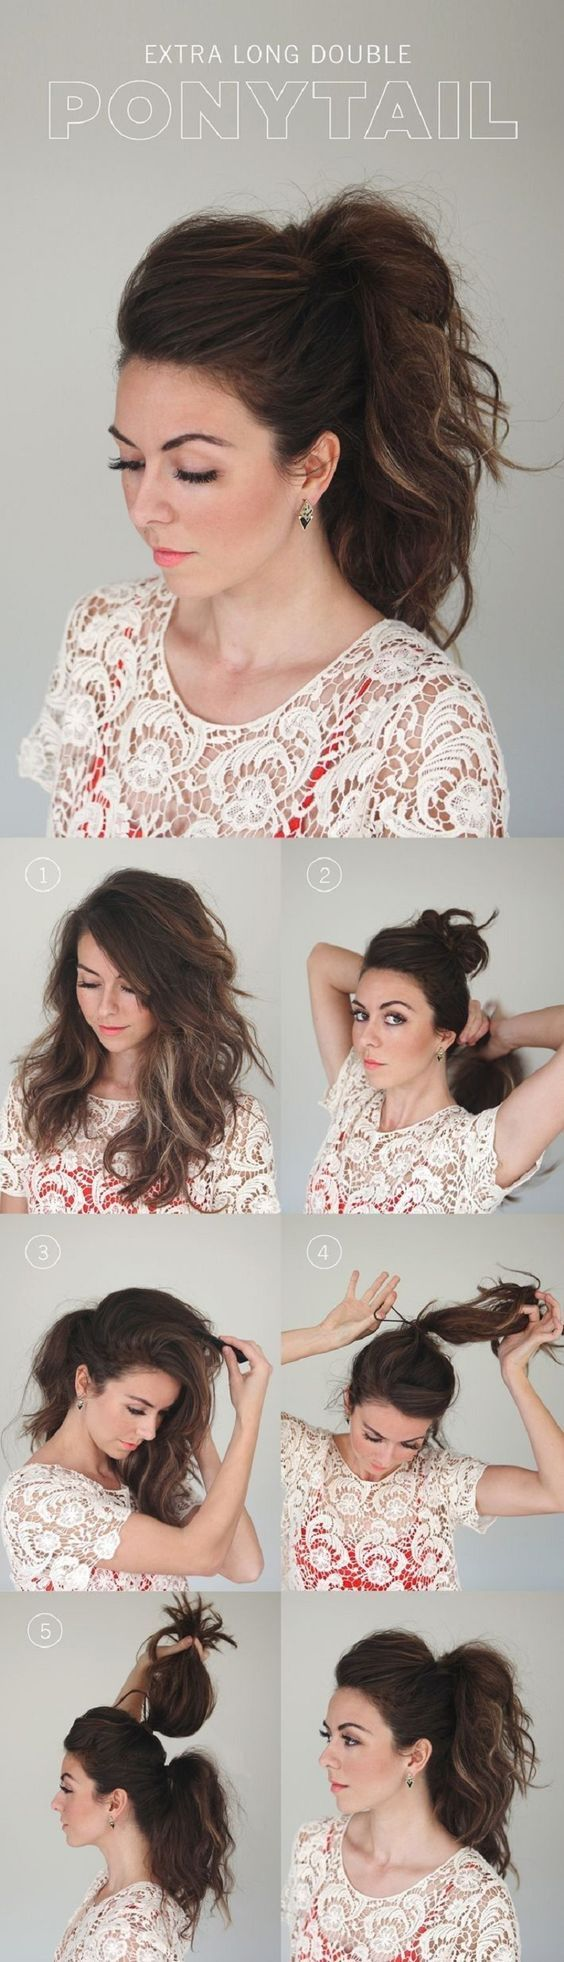 The Perfect High Volume Ponytail in 7 Easy Steps - 15 Messy Hairstyle Tutorials from Pinterest to Master Now